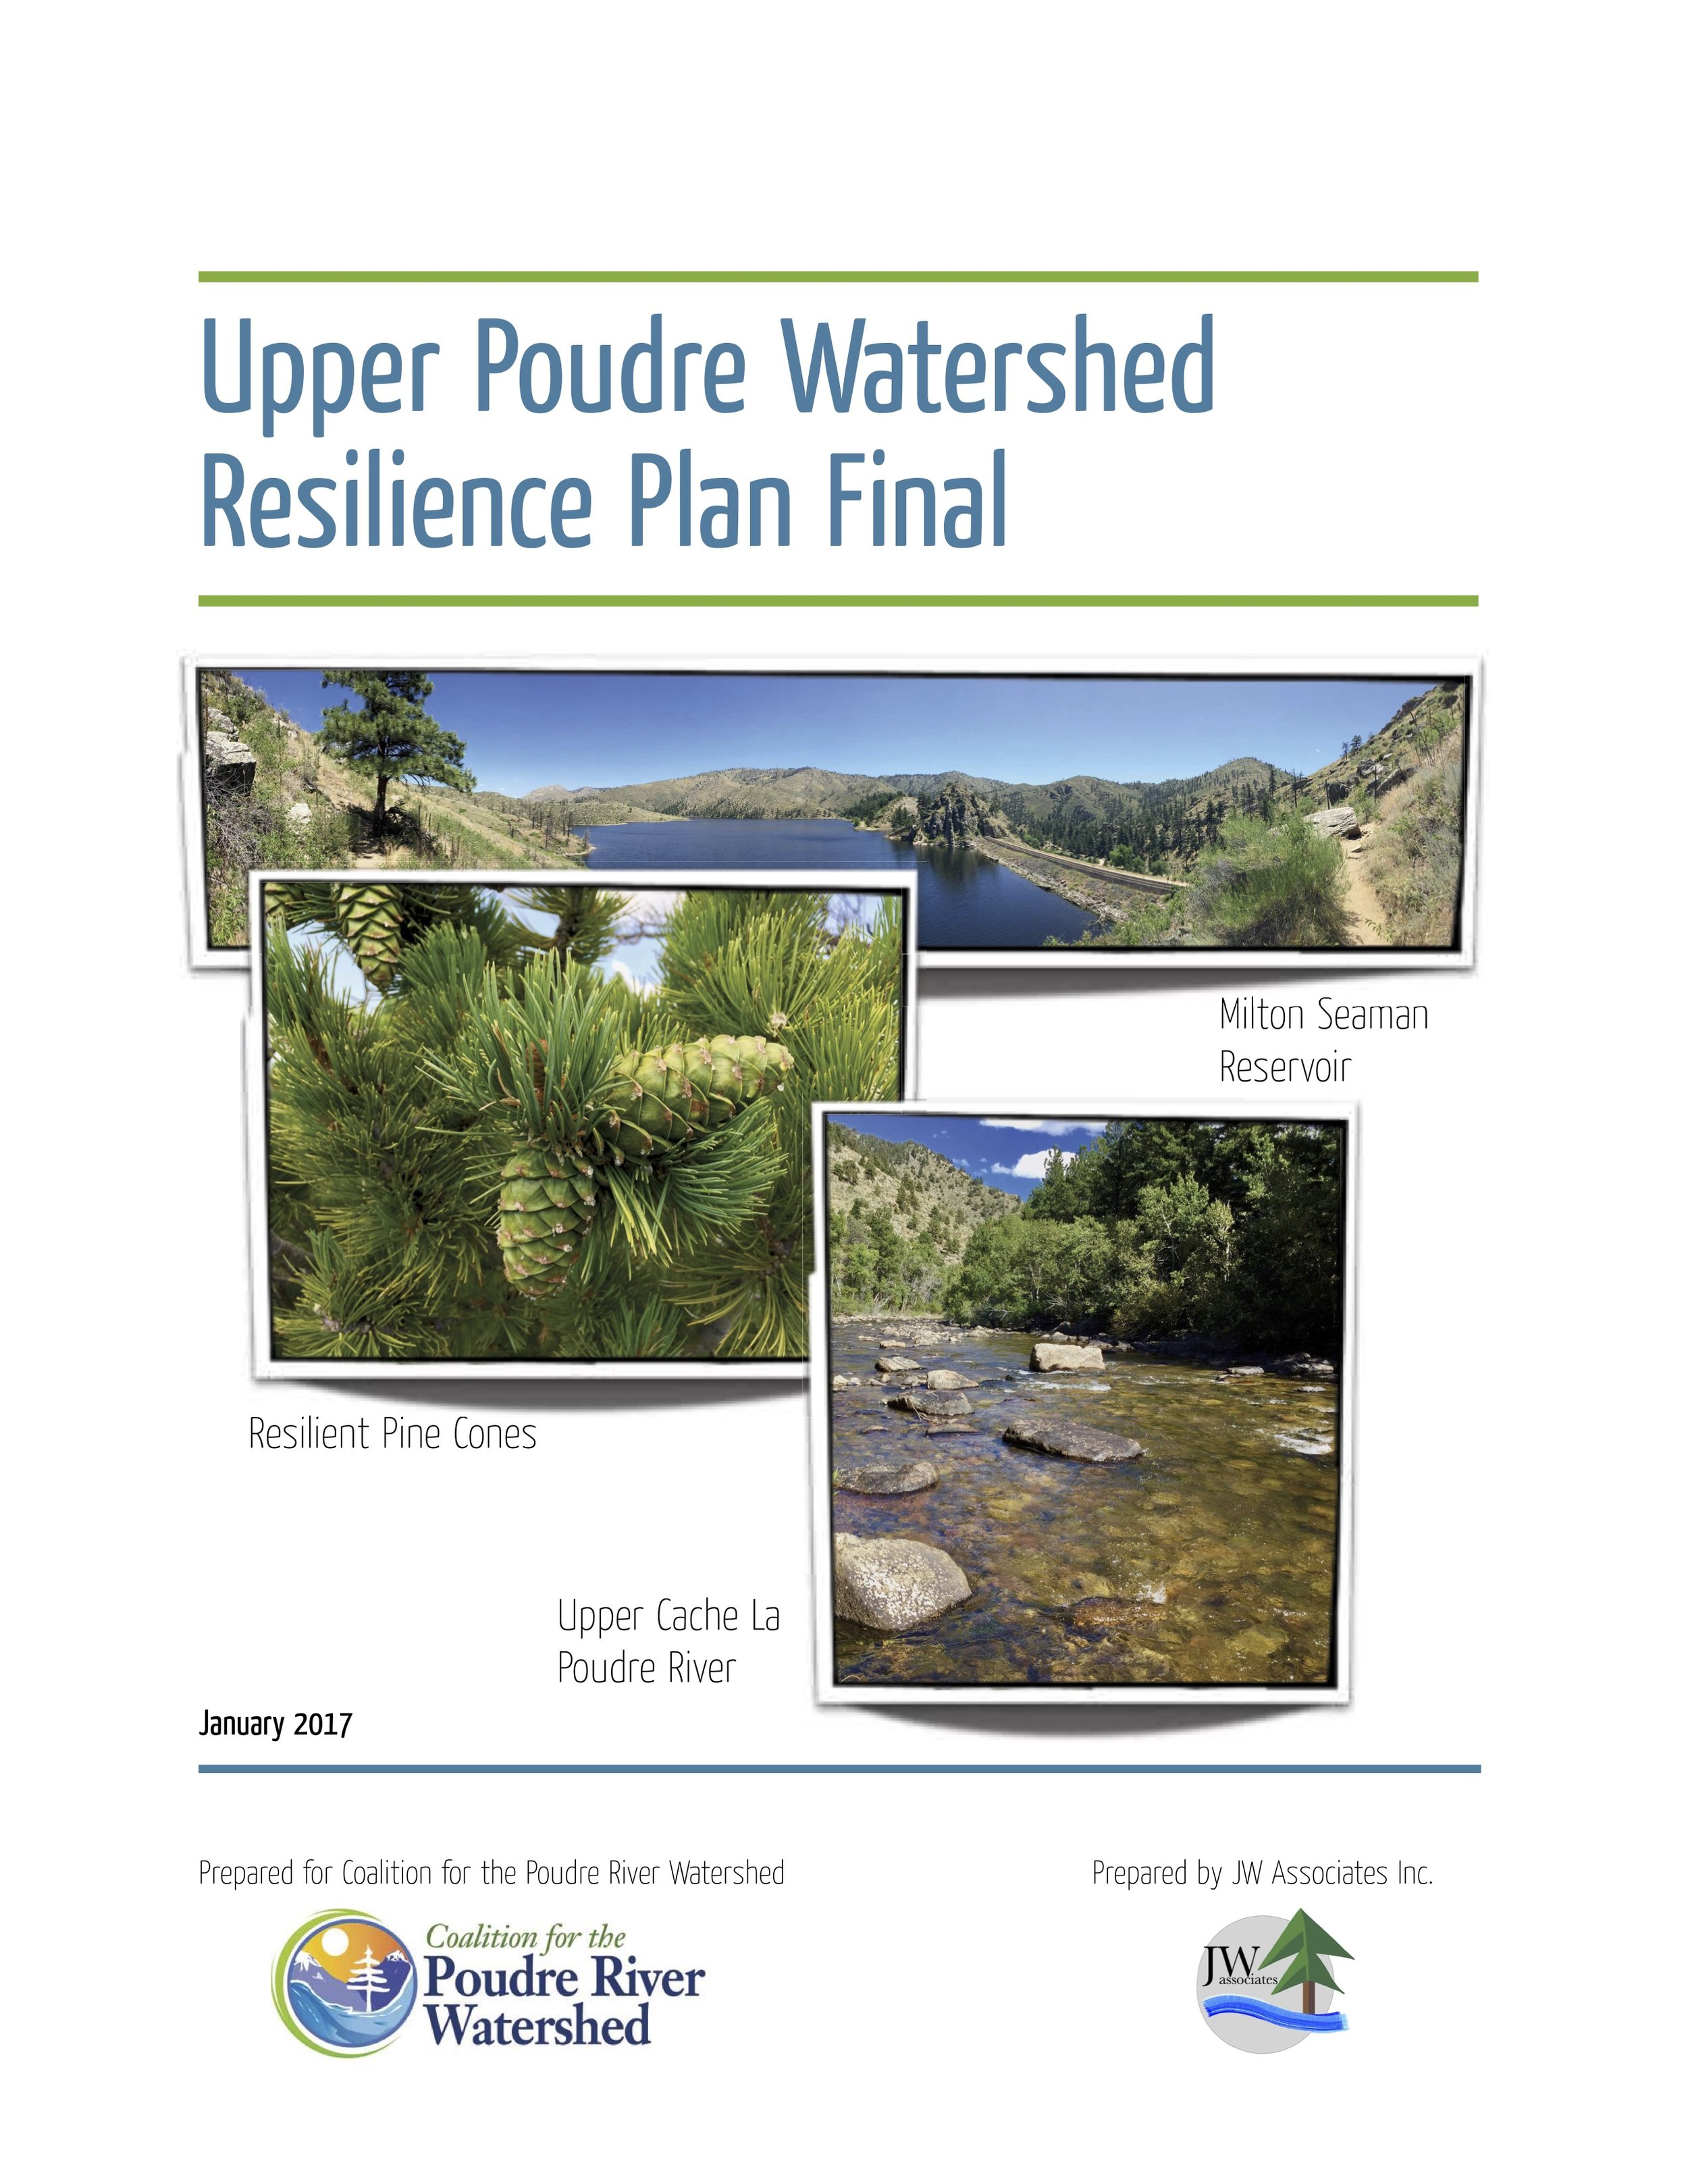 Upper Poudre Resilience Watershed Plan Final_Combined - Part 1.jpg